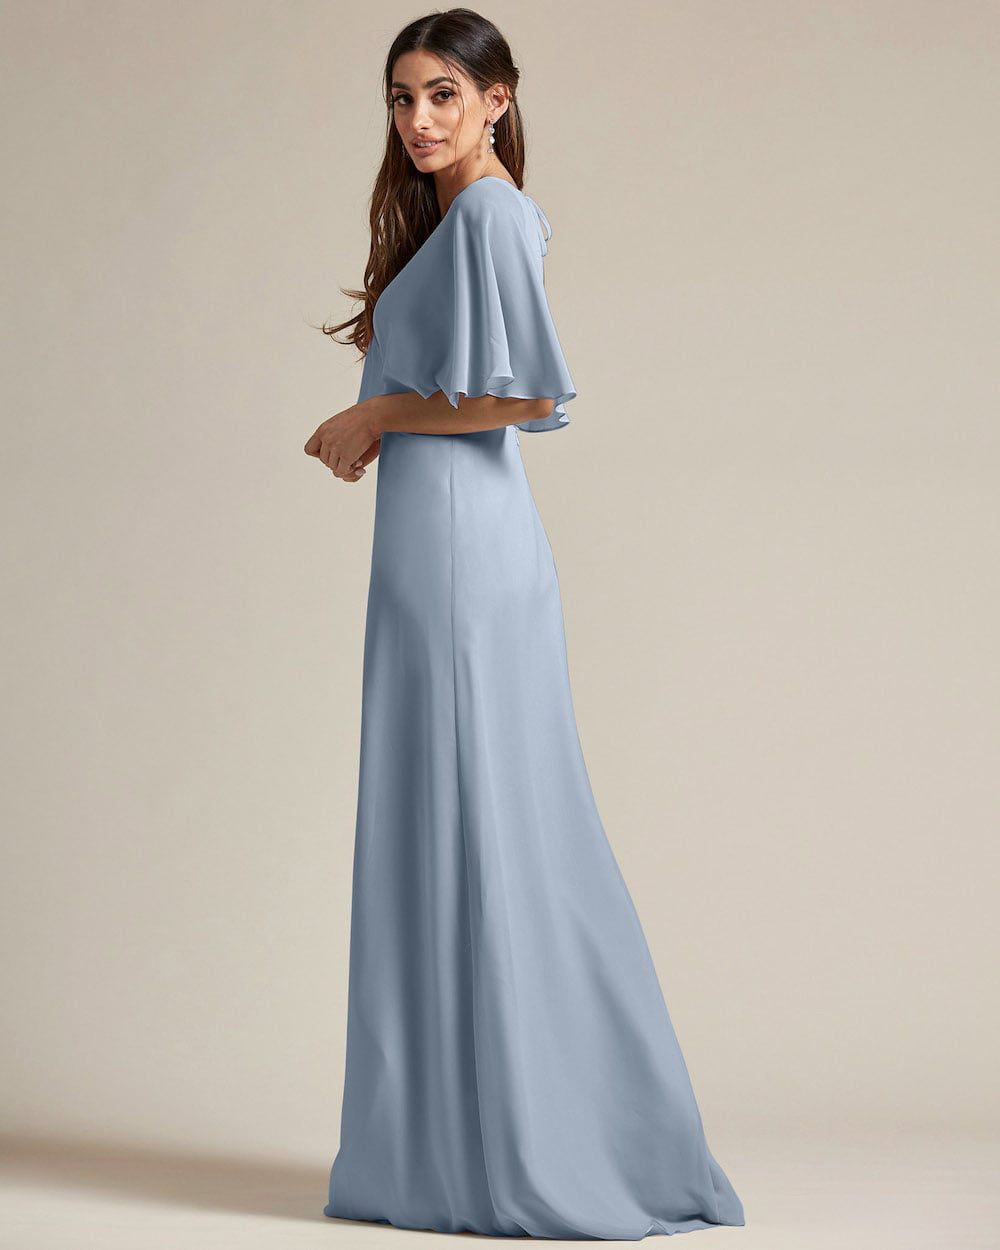 Flounder Design With Large Cut Out Back Long Skirt Bridesmaid Gown - Side